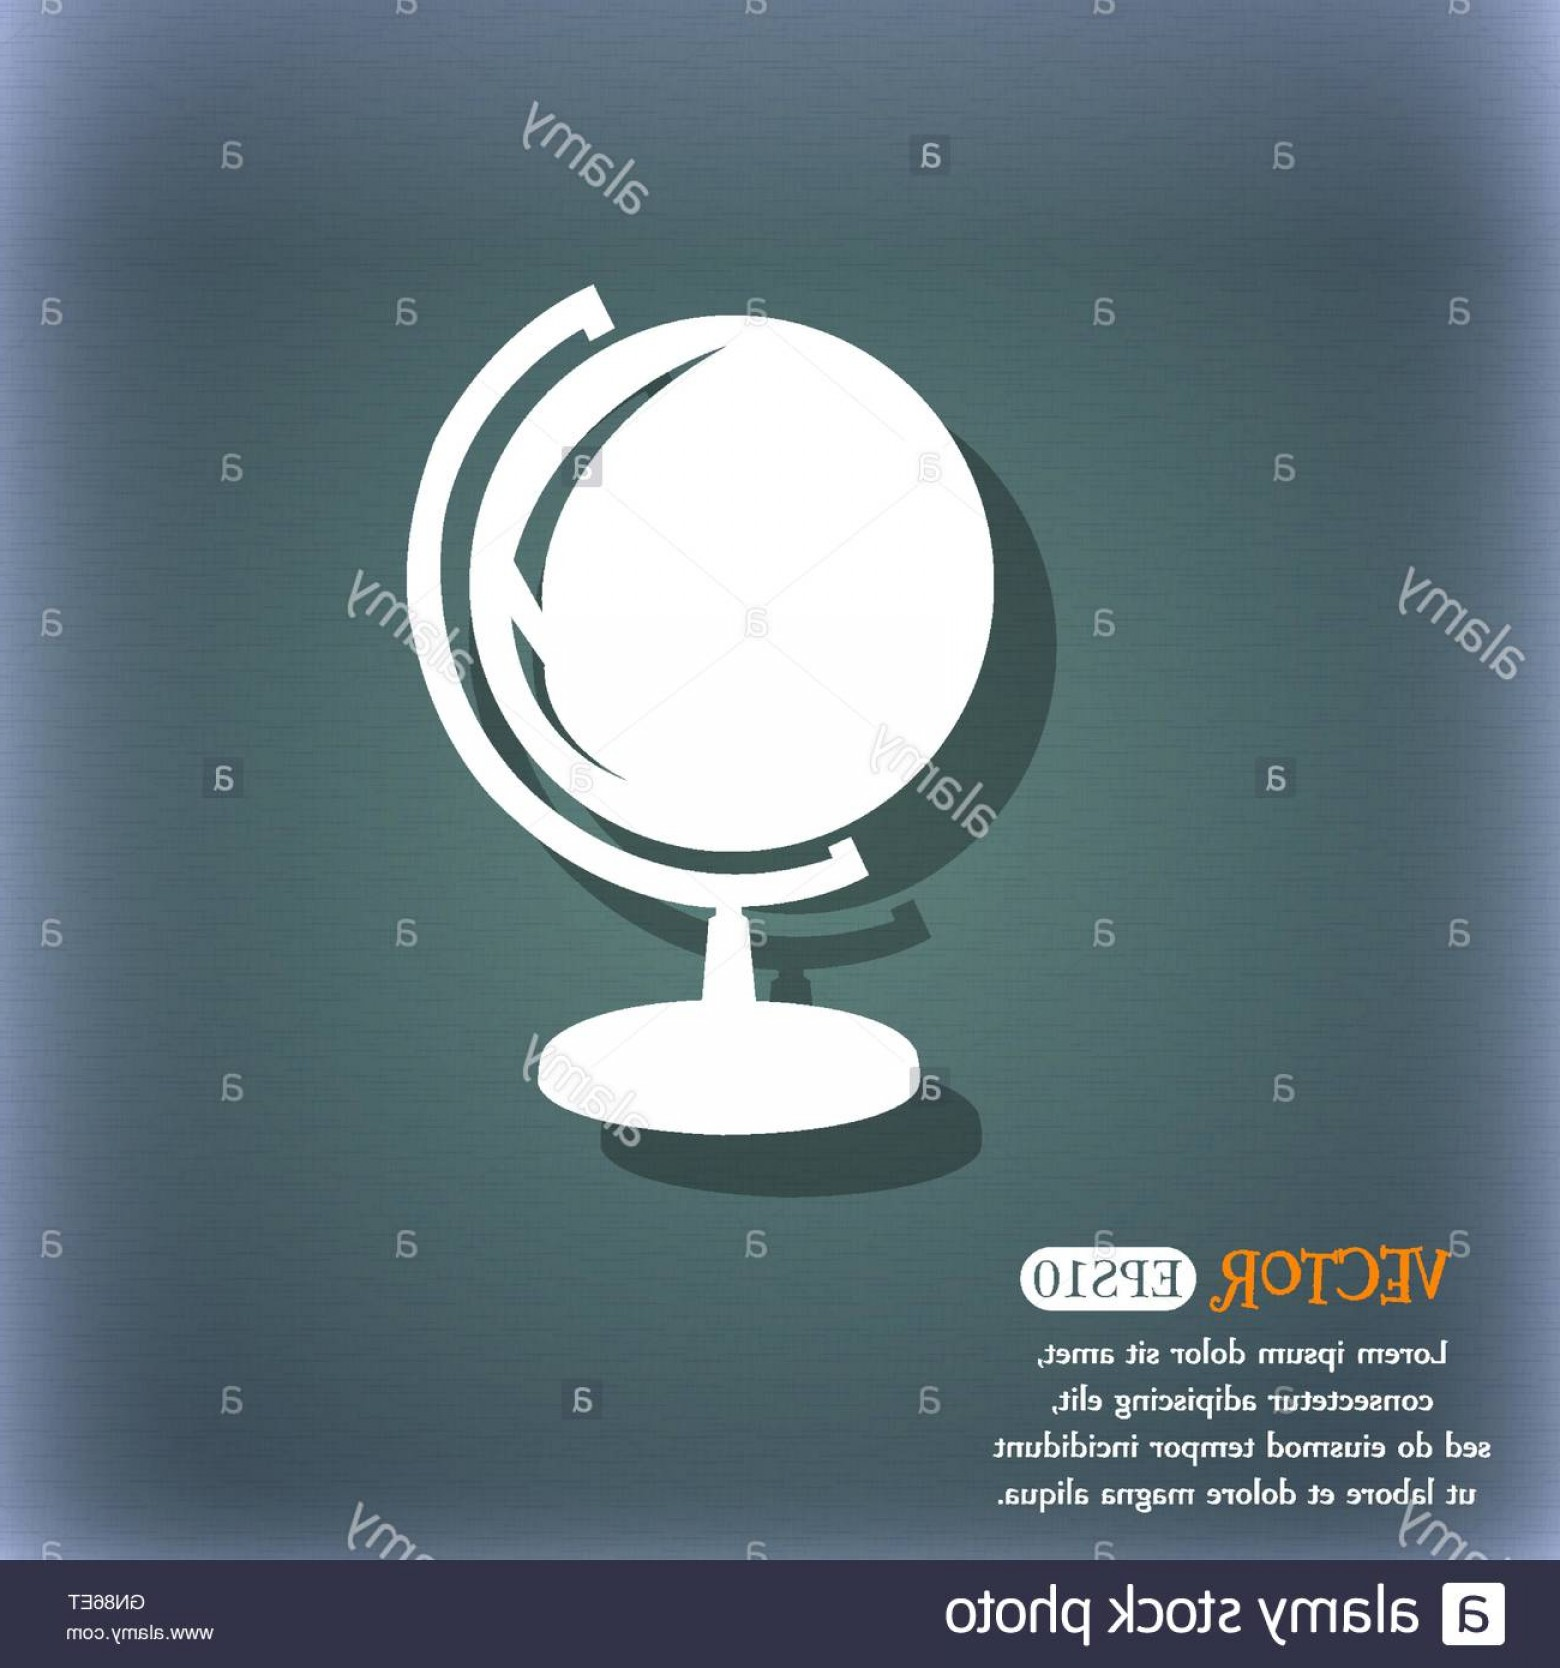 Abstract Vector Art Globe TV: Stock Photo Globe Icon On The Blue Green Abstract Background With Shadow And Space